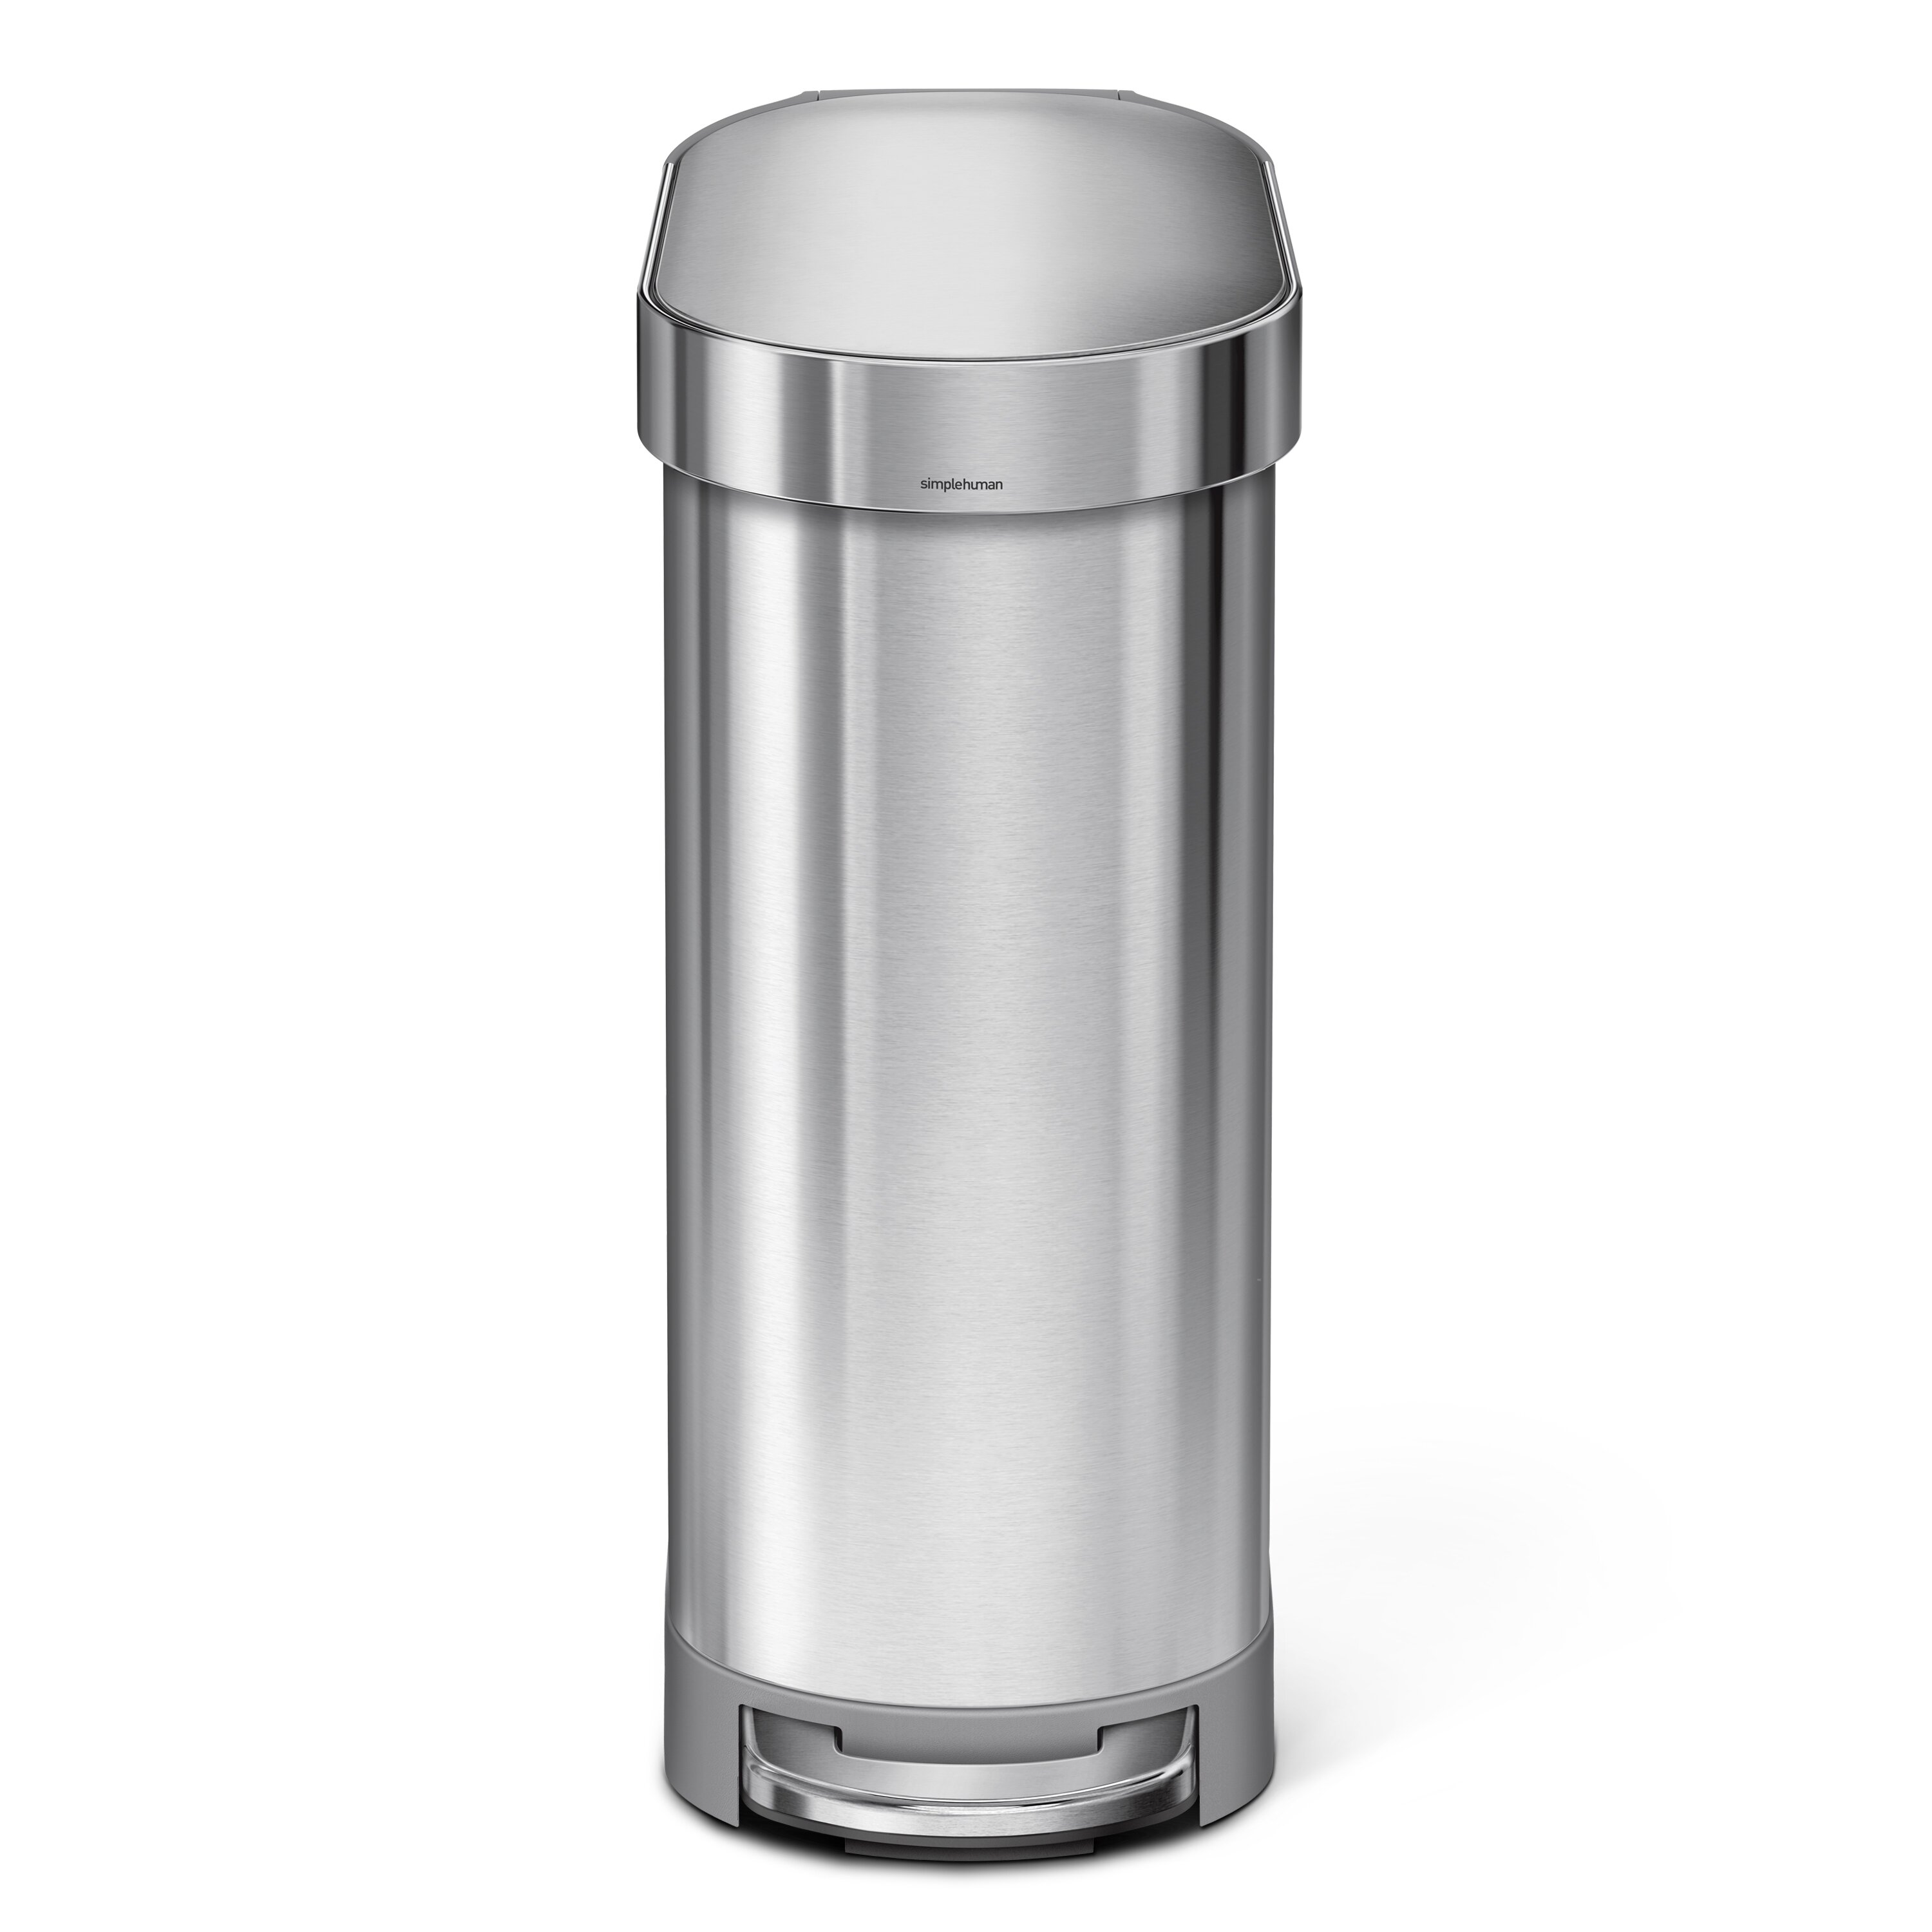 8d542b27b17 simplehuman 45 Liter Slim Step Stainless Steel Trash Can with Liner Rim  Rose   Reviews